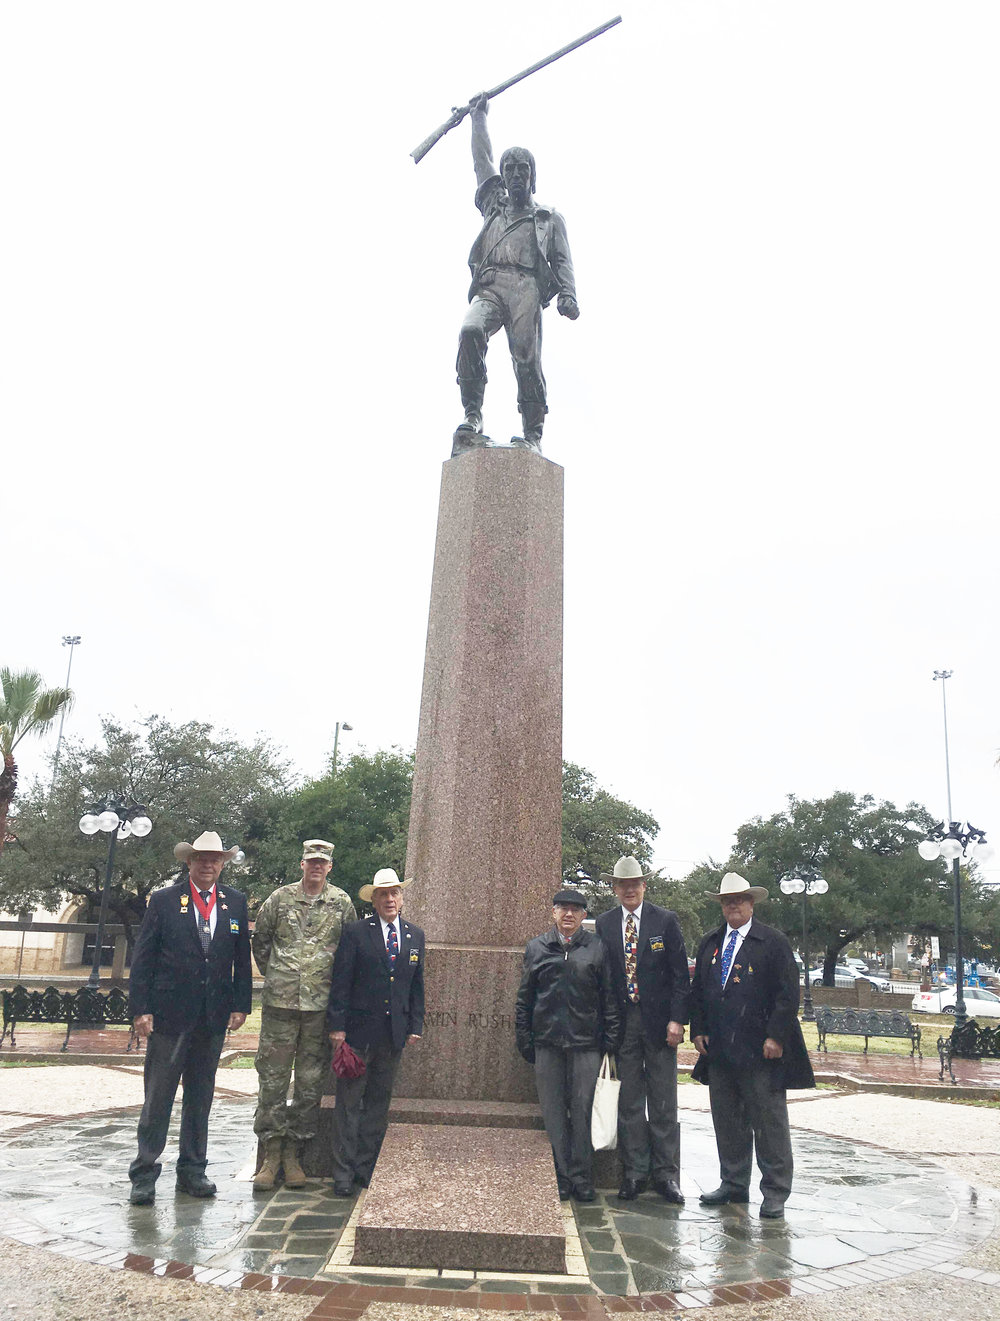 "Marketing Officer  Dick Weitzel    ,    2nd VP    Tom Jones,    1st VP General    Ed Heath,    Admin. of Historical Events    Bob Benavides,    1st VP    John Meehan   &  Sgt-at-Arms    Al Davis   representing the Alamo Chapter pay tribute on a rainy Dec 7, 2017 to the life and passing of Ben Milam, hero of the Texas Revolution. Without Ben and his famous December 1835 "" Who will go with Old Ben Milam into San Antonio "", there might not have been a Texas Republic. His leadership led to the tough fight and ultimate surrender of the Mexican garrison under General Cos at the cost of Ben's life. This was the Chapter's 9th Memorial to this hero of the Texas Revolution."